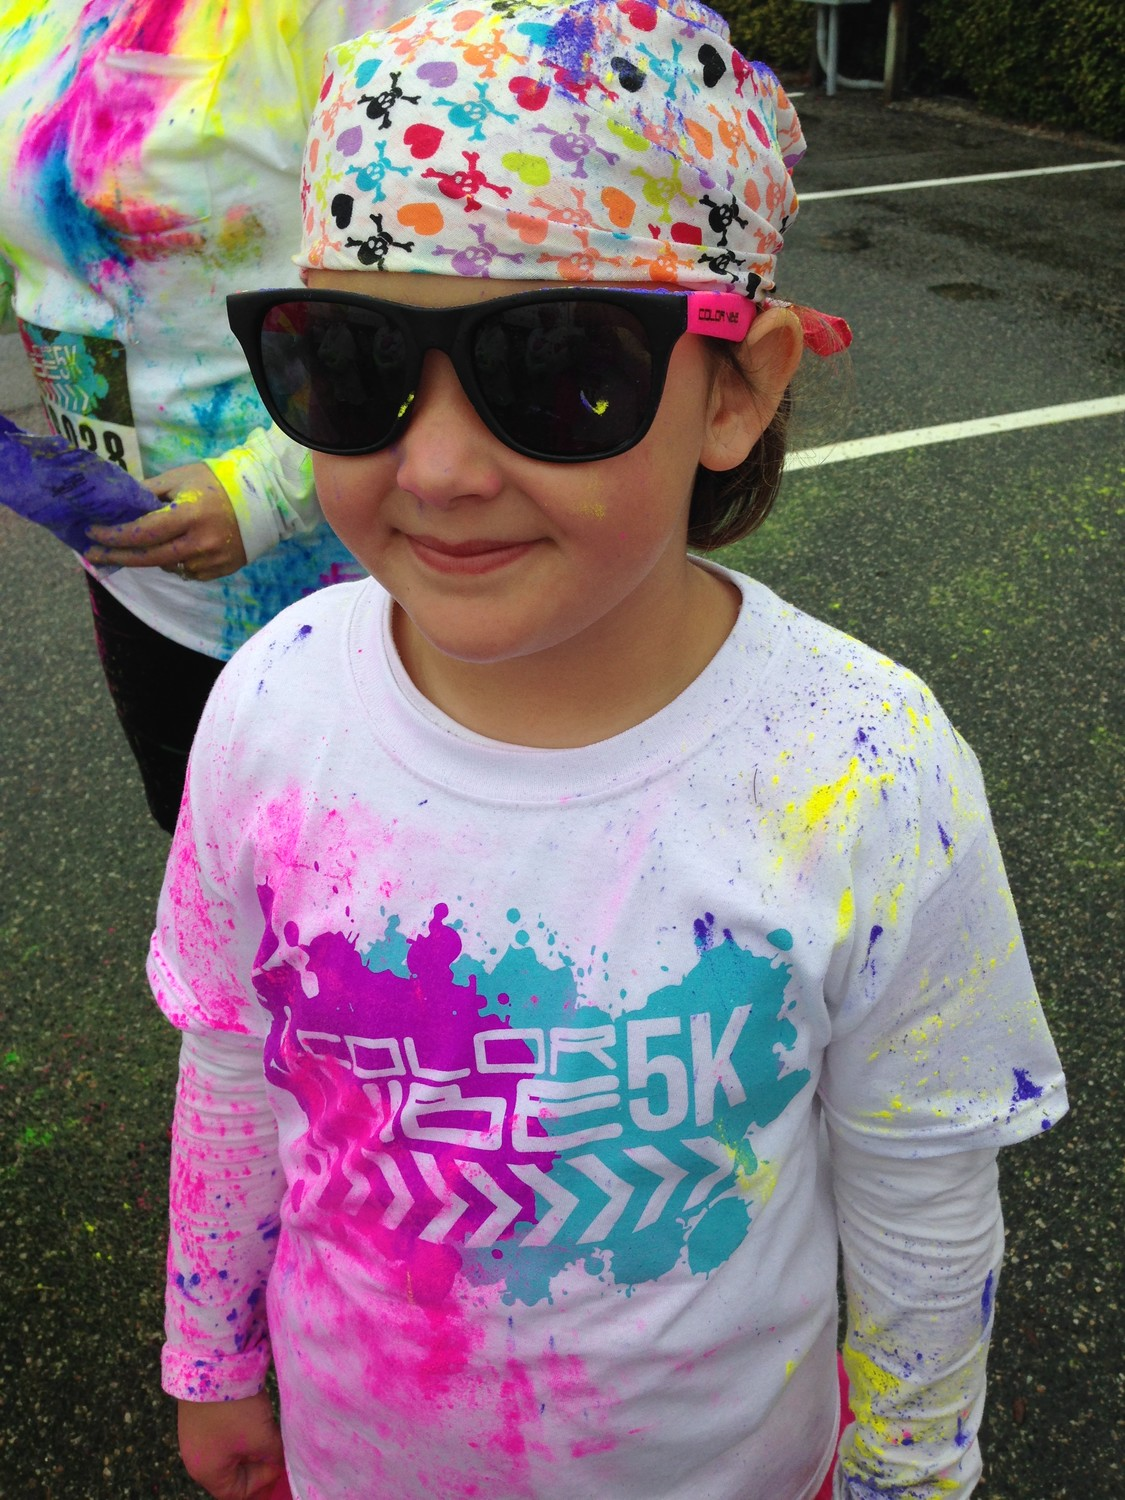 Anna Lewis anna lewis burke at color run | manning live